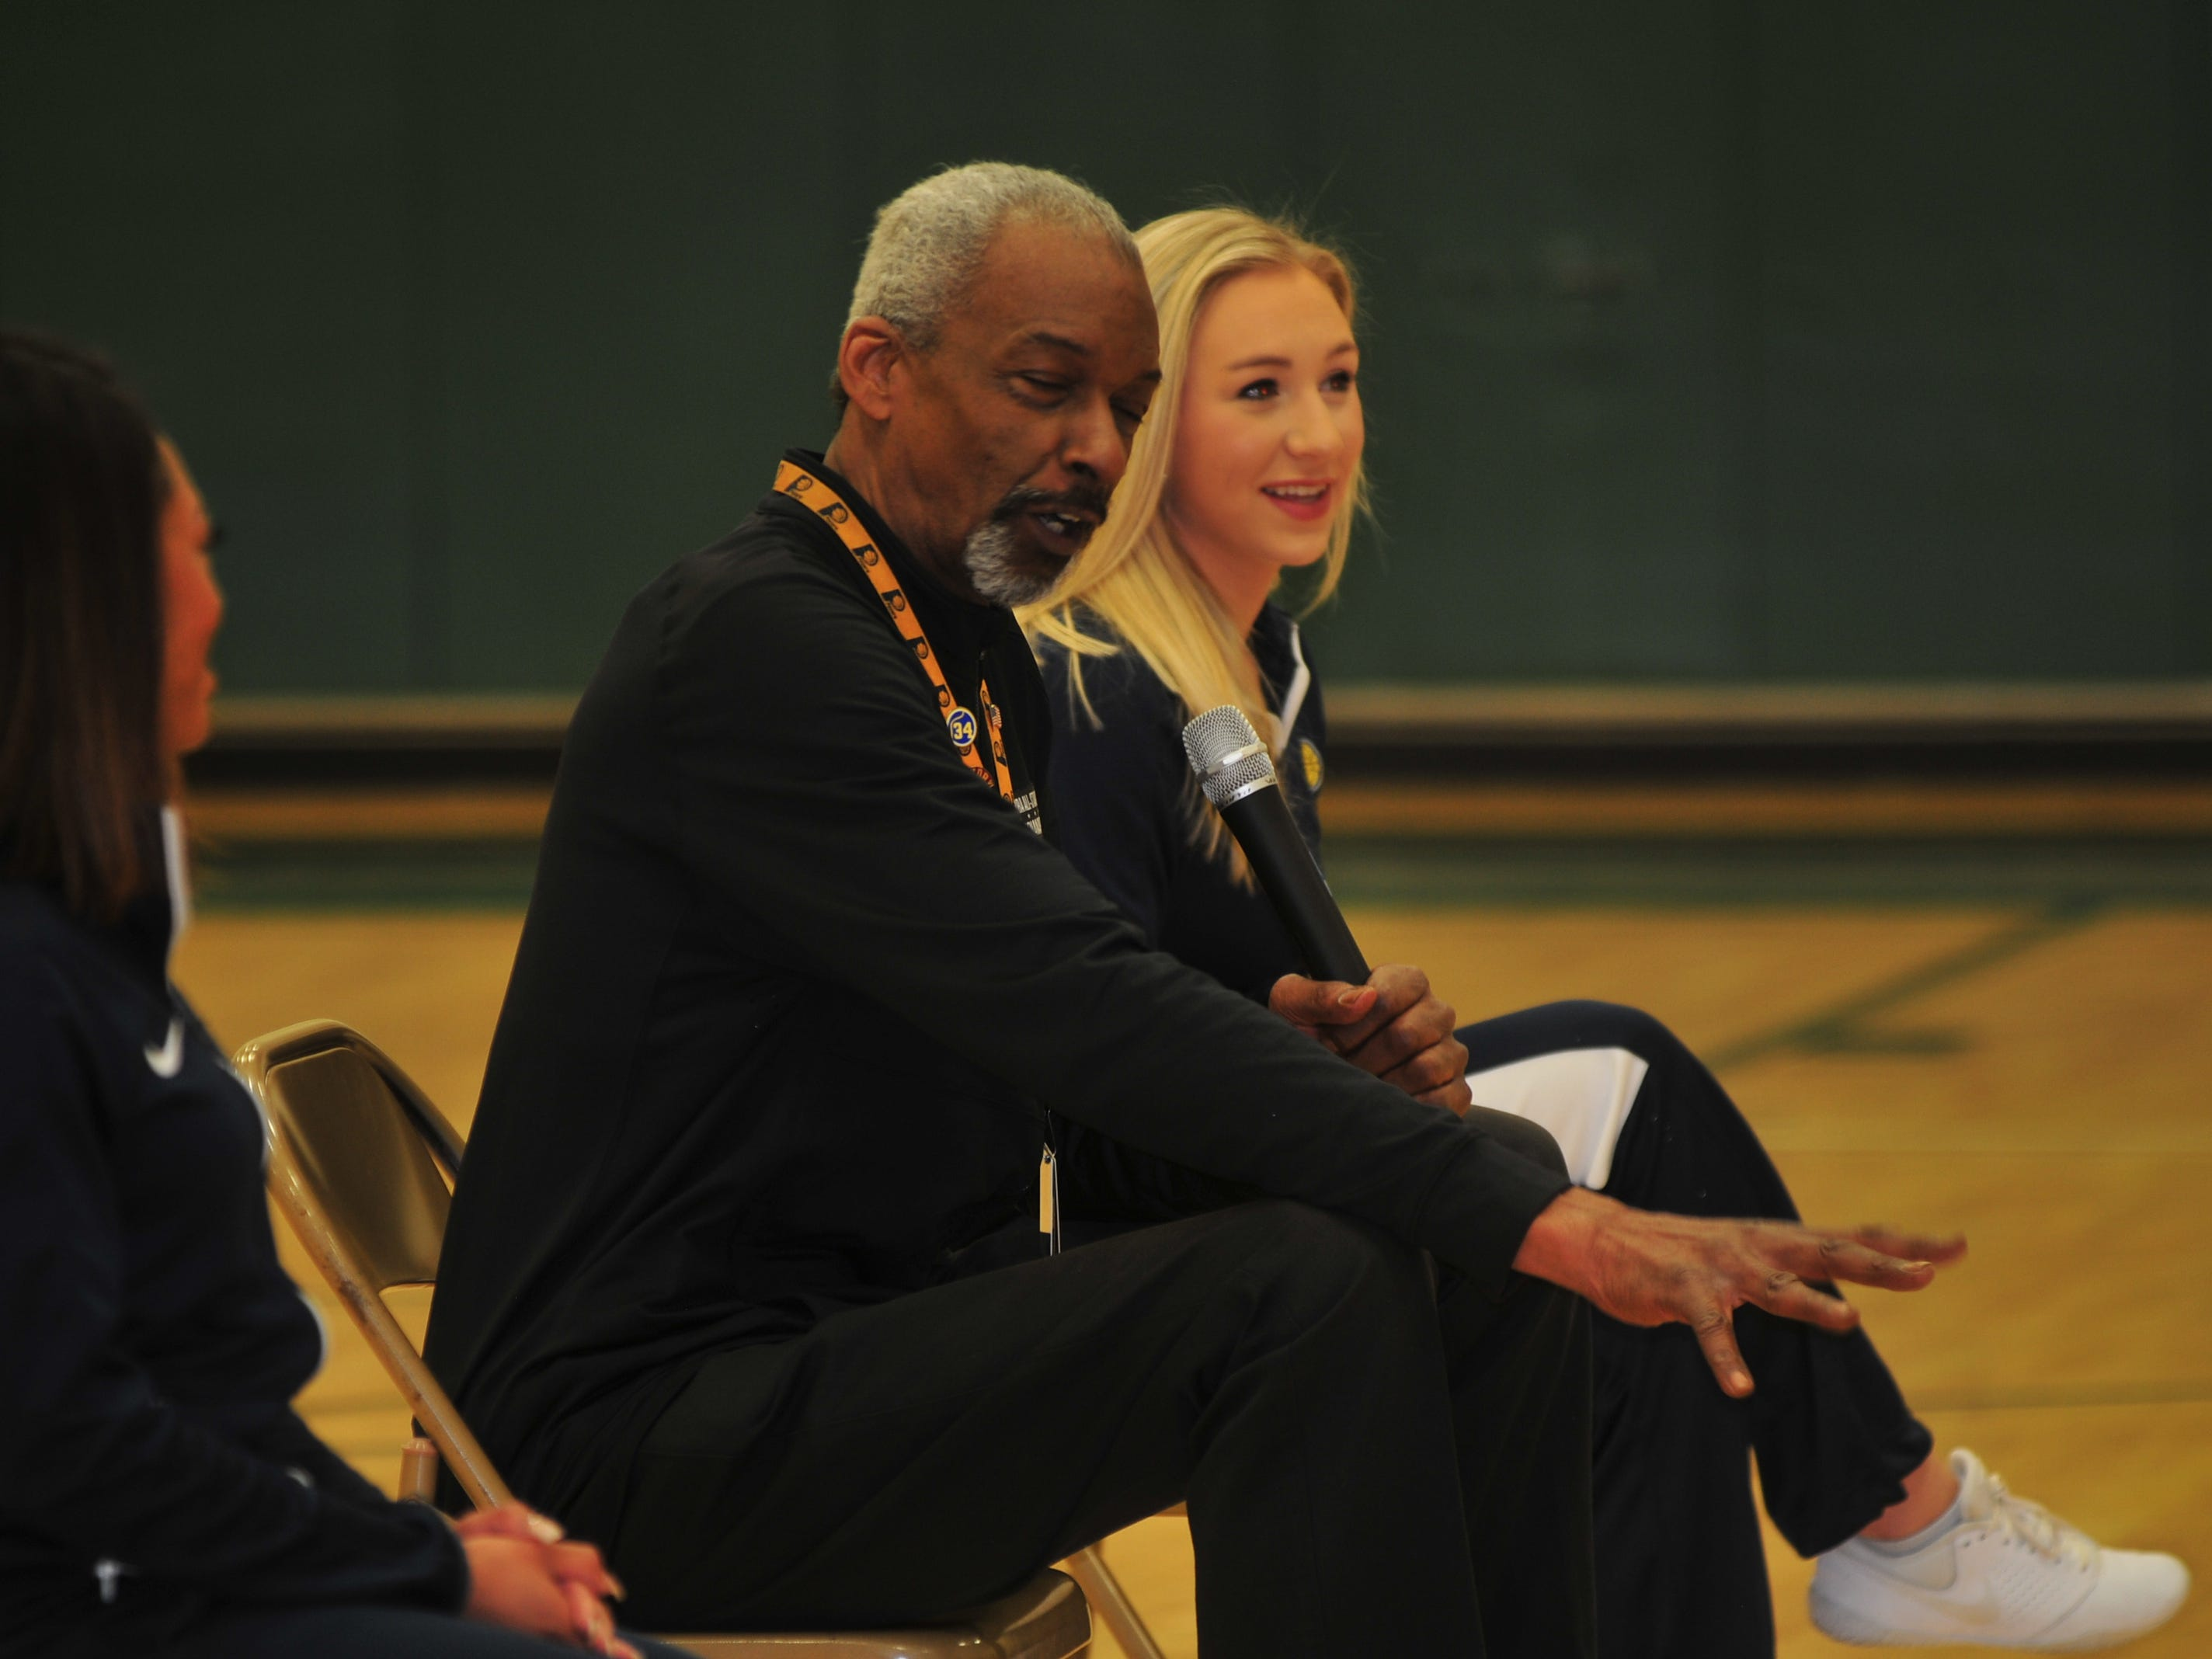 Darnell Hillman, a former Indiana Pacers player, talks about winning an ABA championship with the Pacers as Pacemates Shania (left) and Gwen listen.